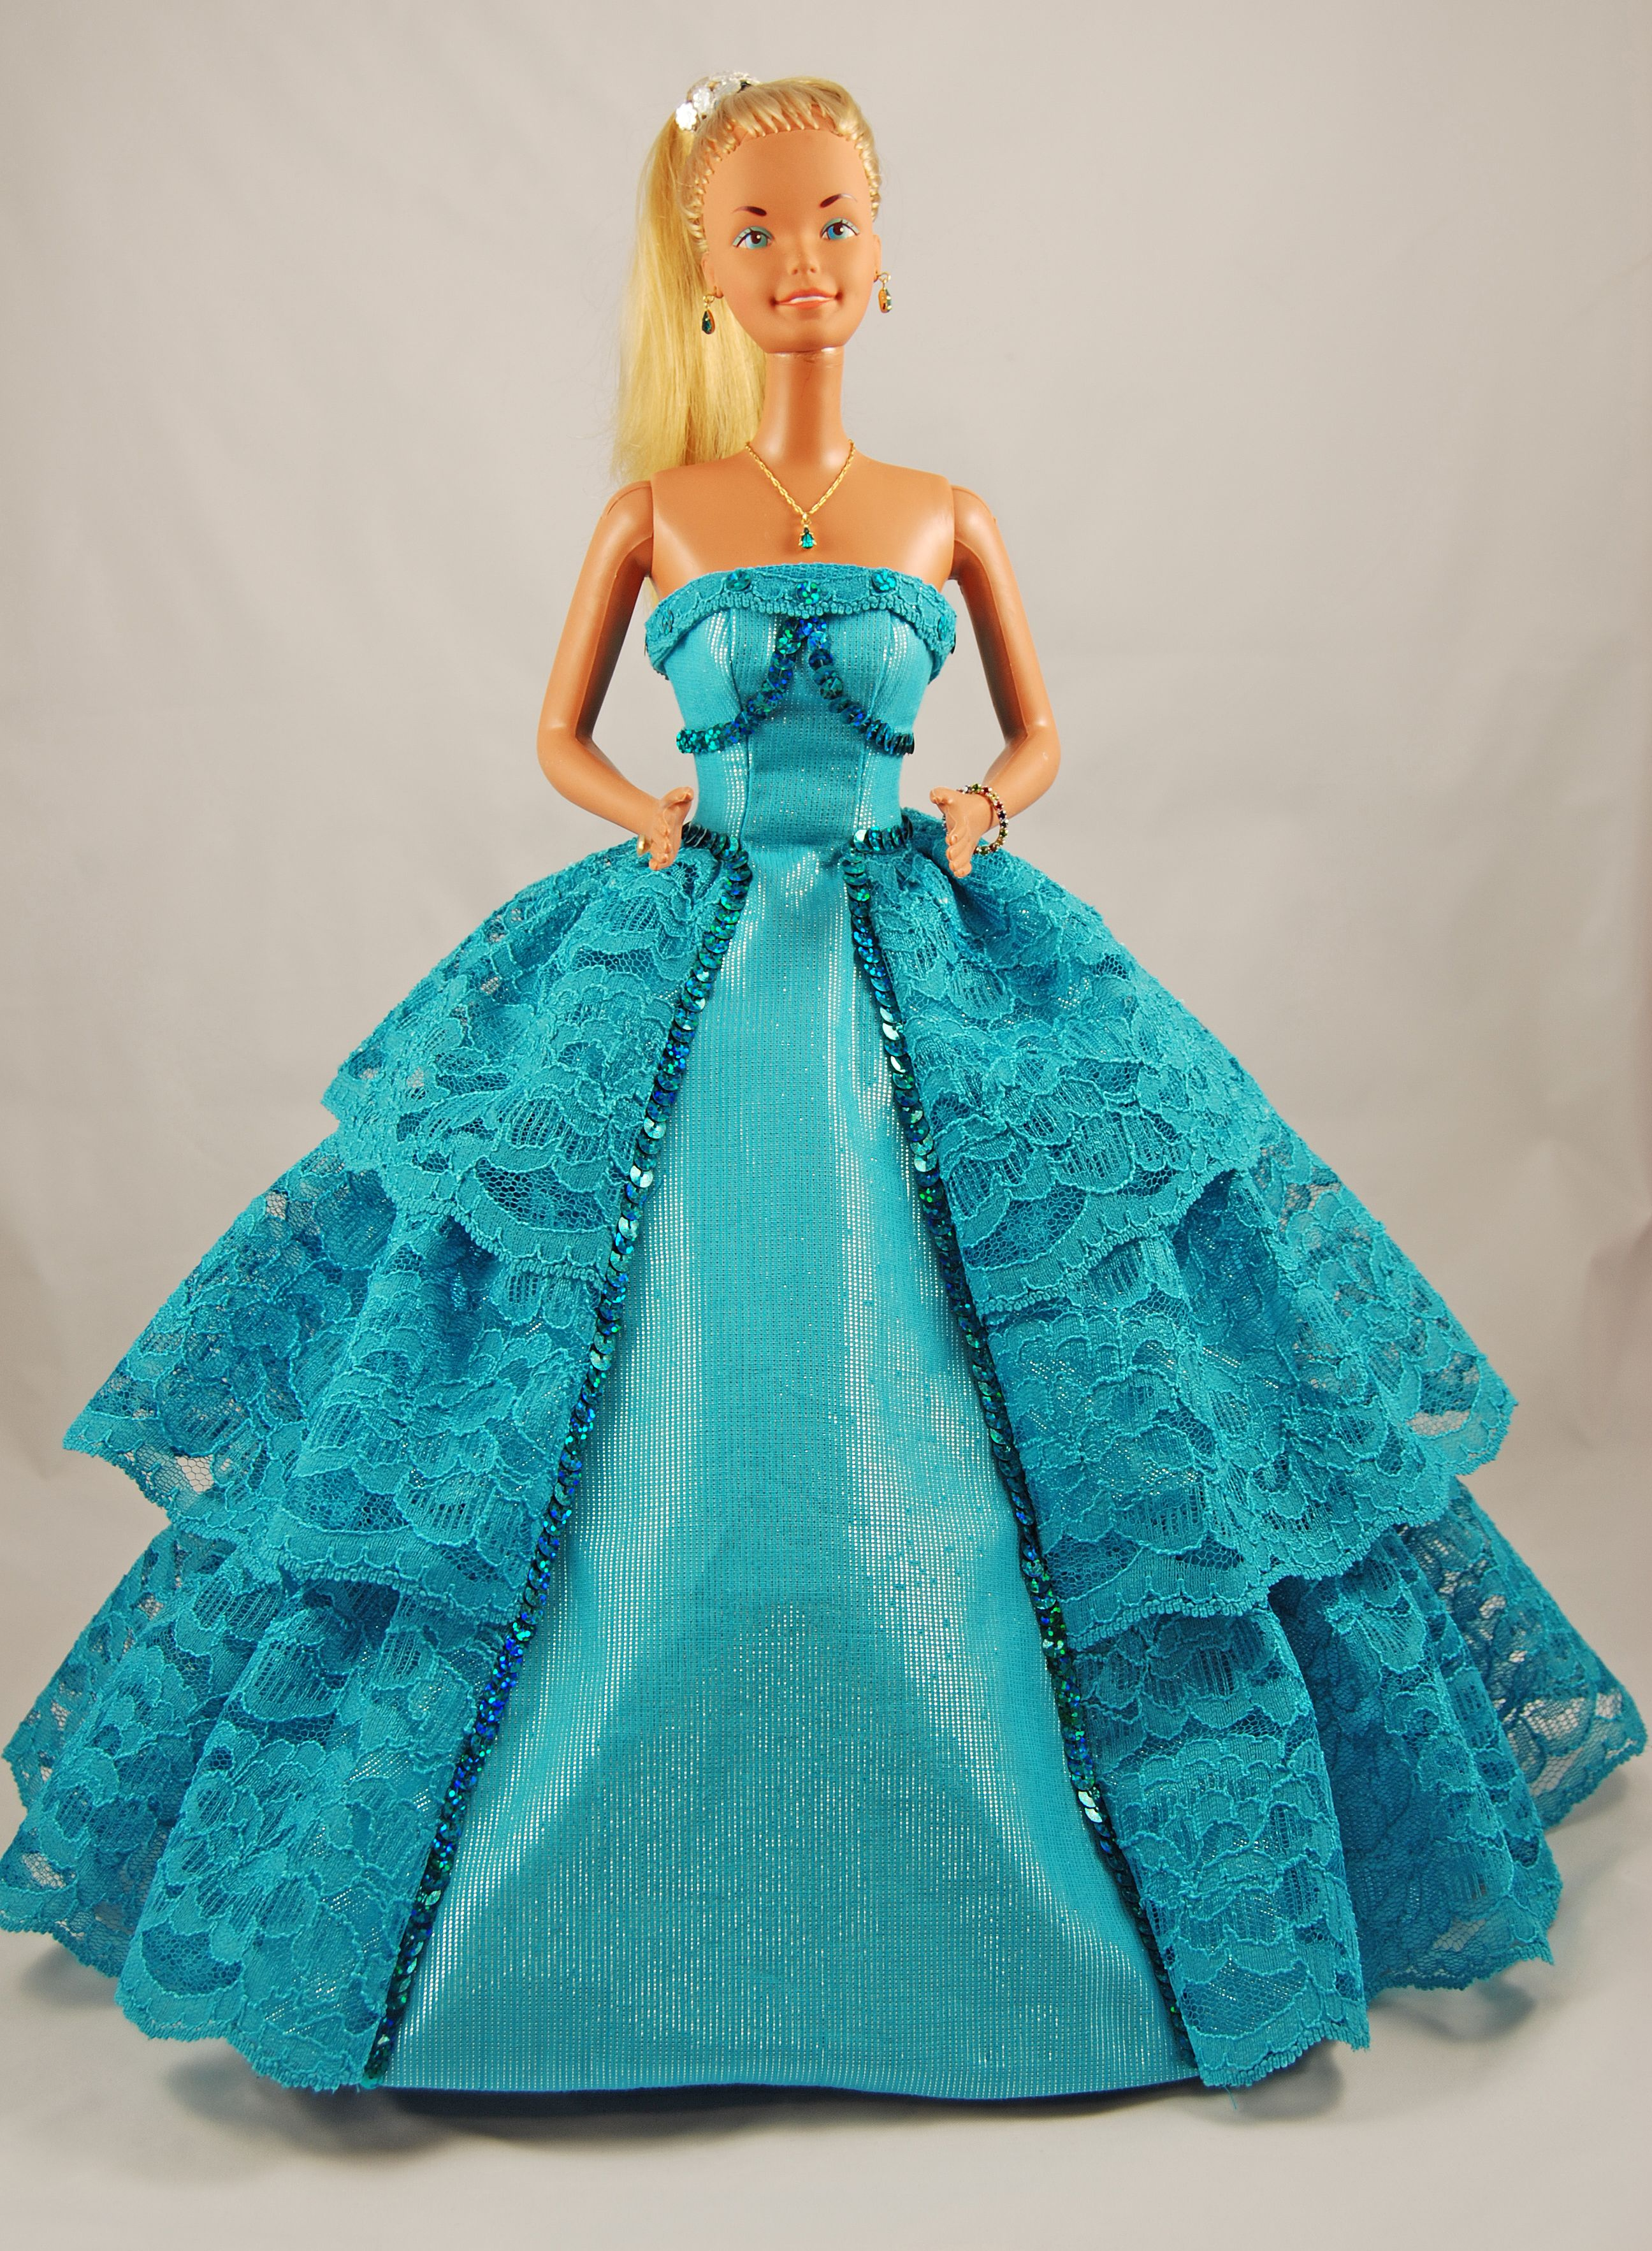 Fashion Princess Party Dress//Evening Clothes//Gown For 11.5in.Doll a12